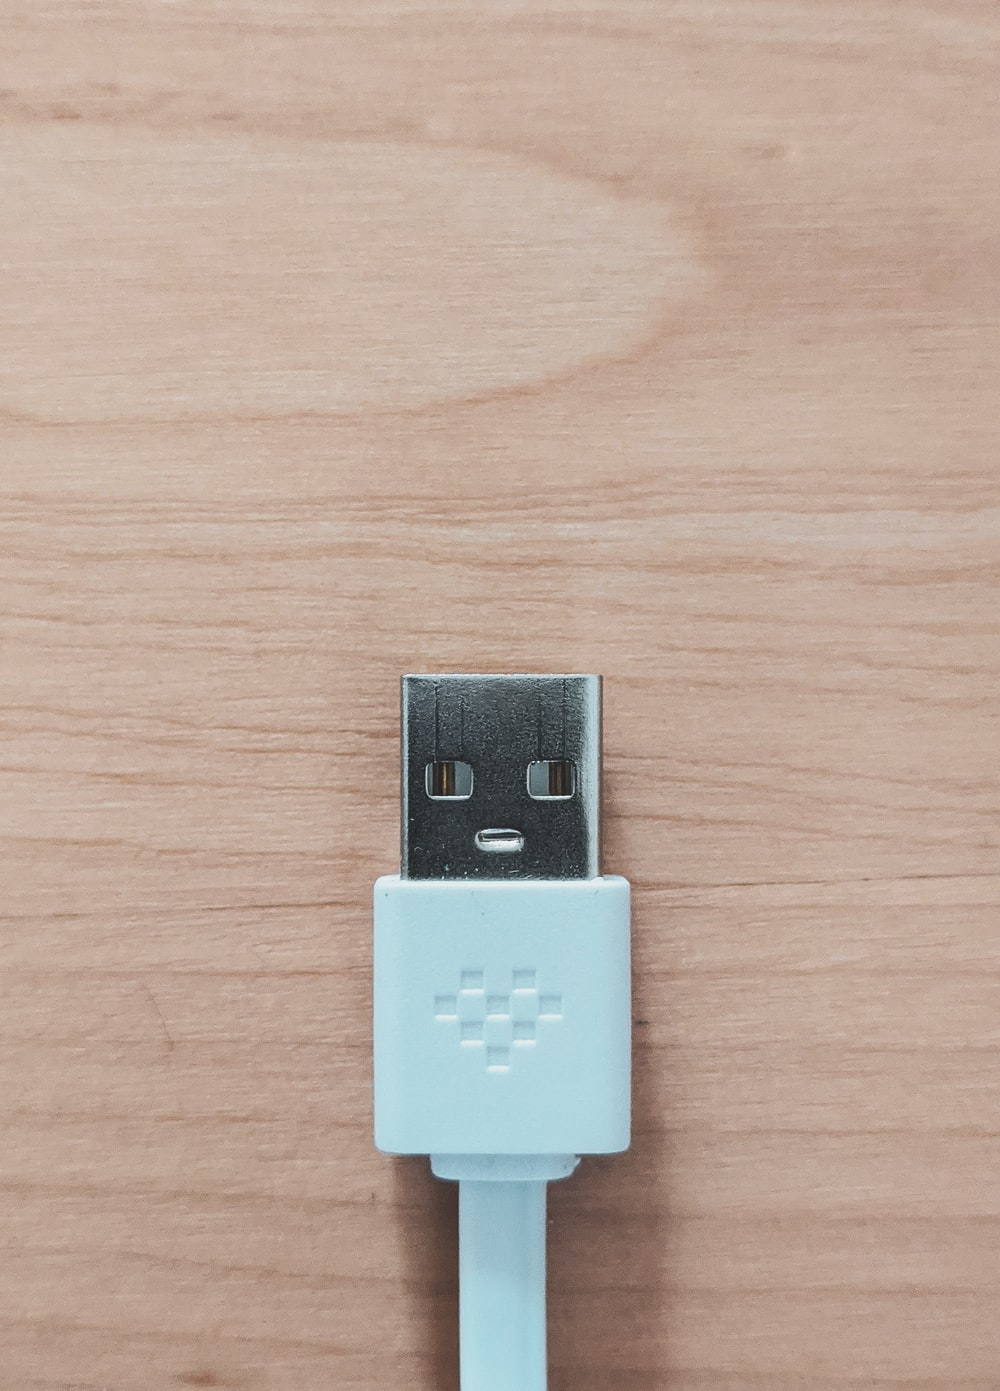 white usb flash drive on brown wooden table